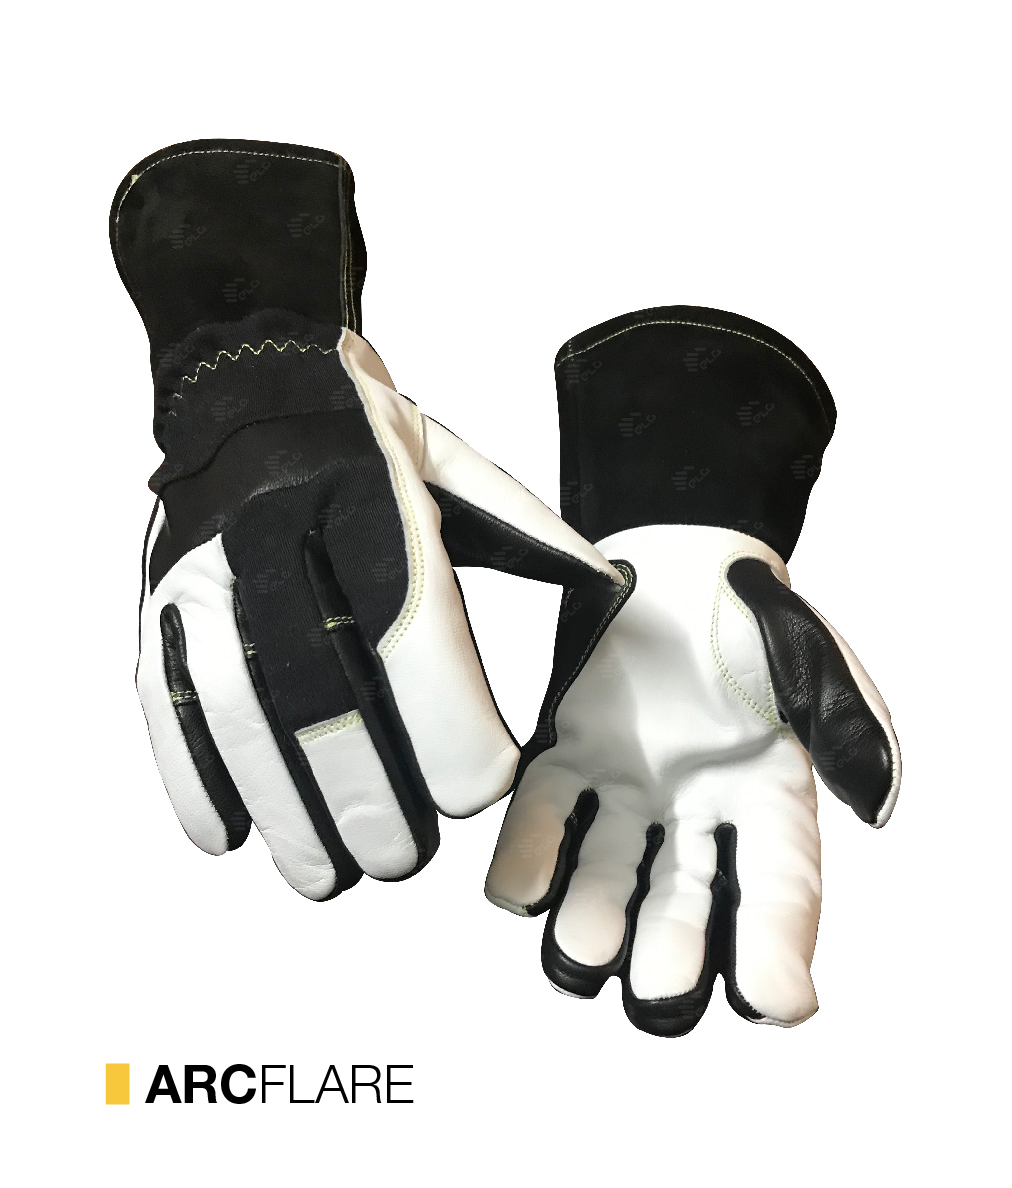 ARCFLARE cut-resistant gloves by elite leather